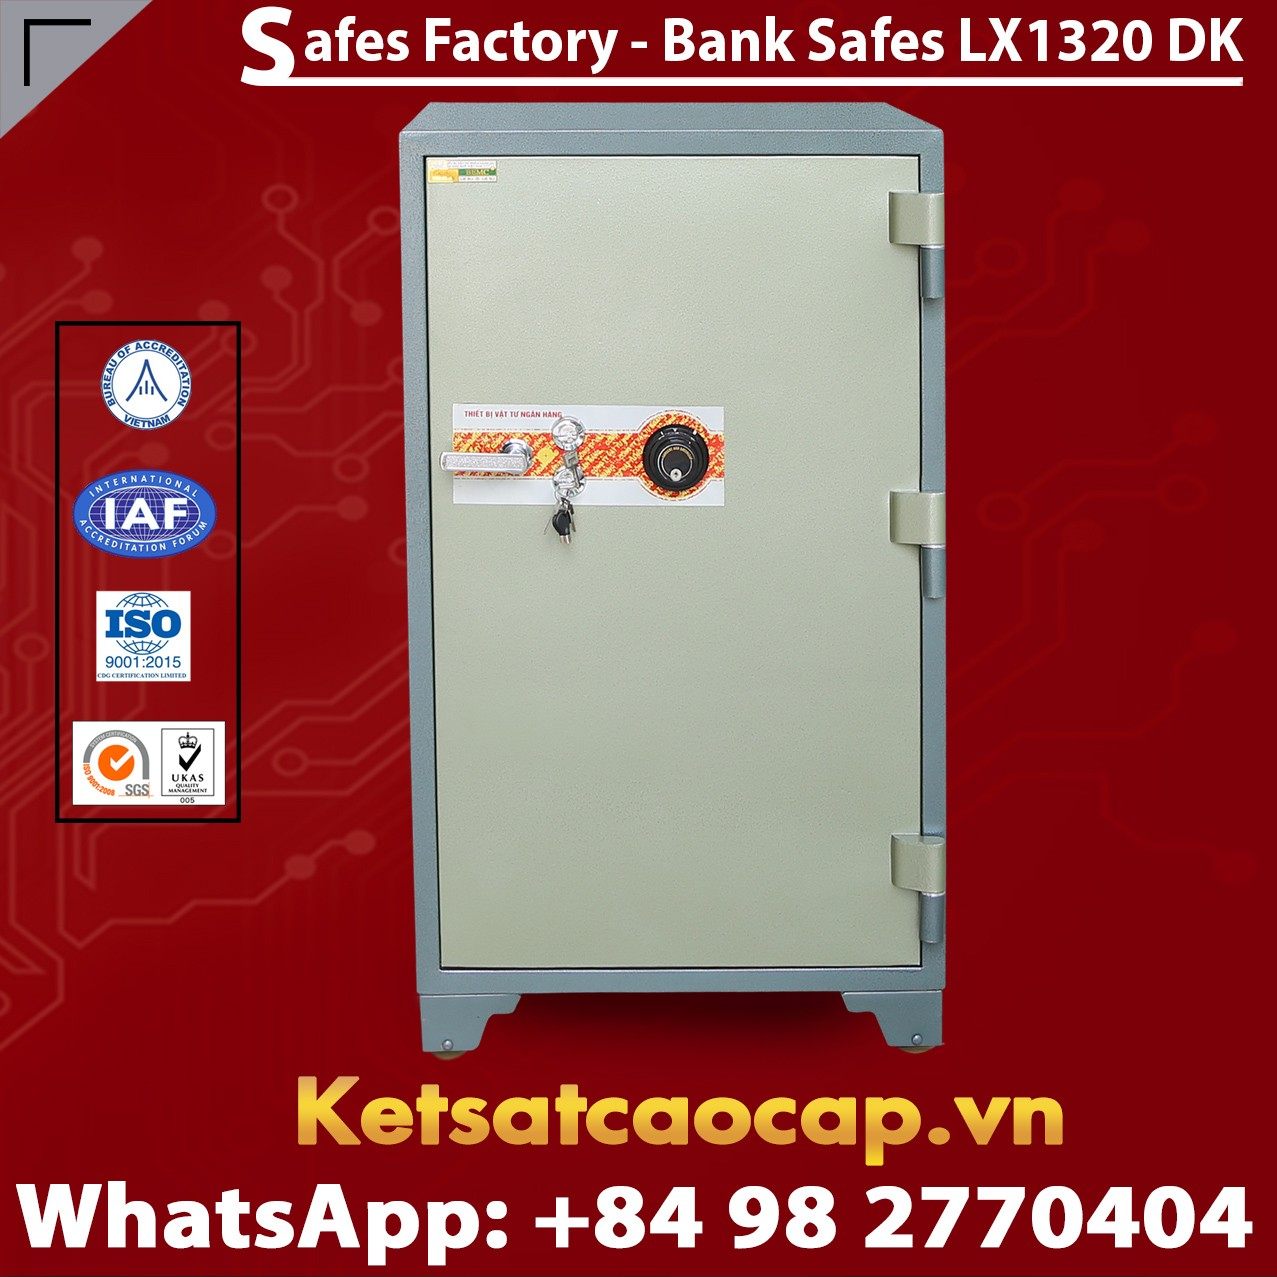 Bank Safes High Quality Price Ratio